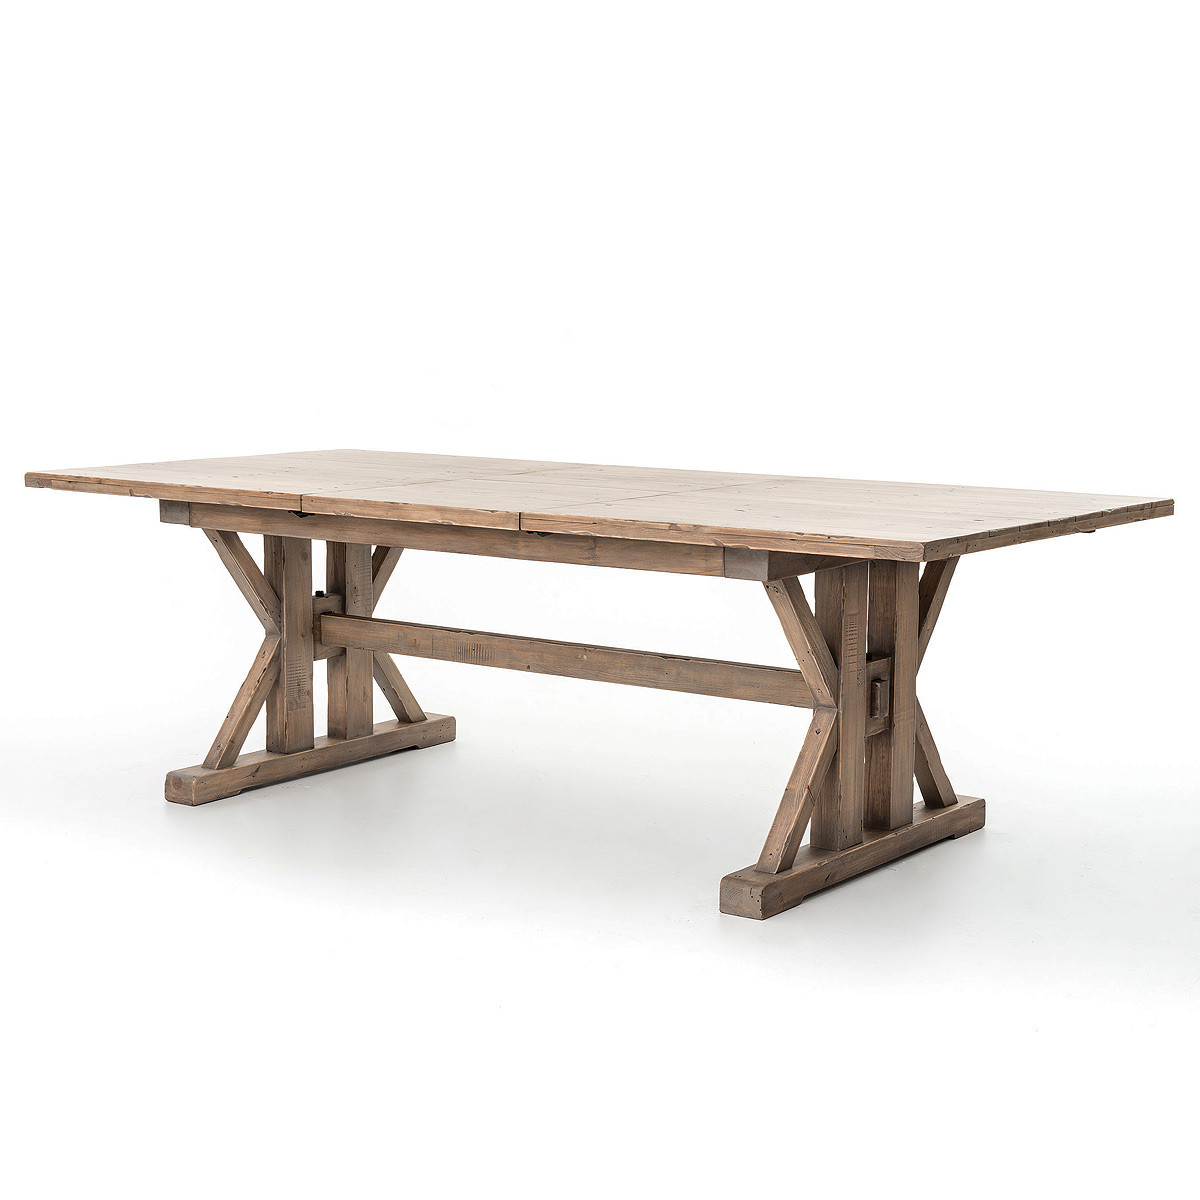 Coastal Natural Wood Trestle Extension Dining Table 96  : CoastalNaturalWoodTrestleExtensionDiningTable00388143138477112801280 from www.zinhome.com size 1200 x 1200 jpeg 142kB